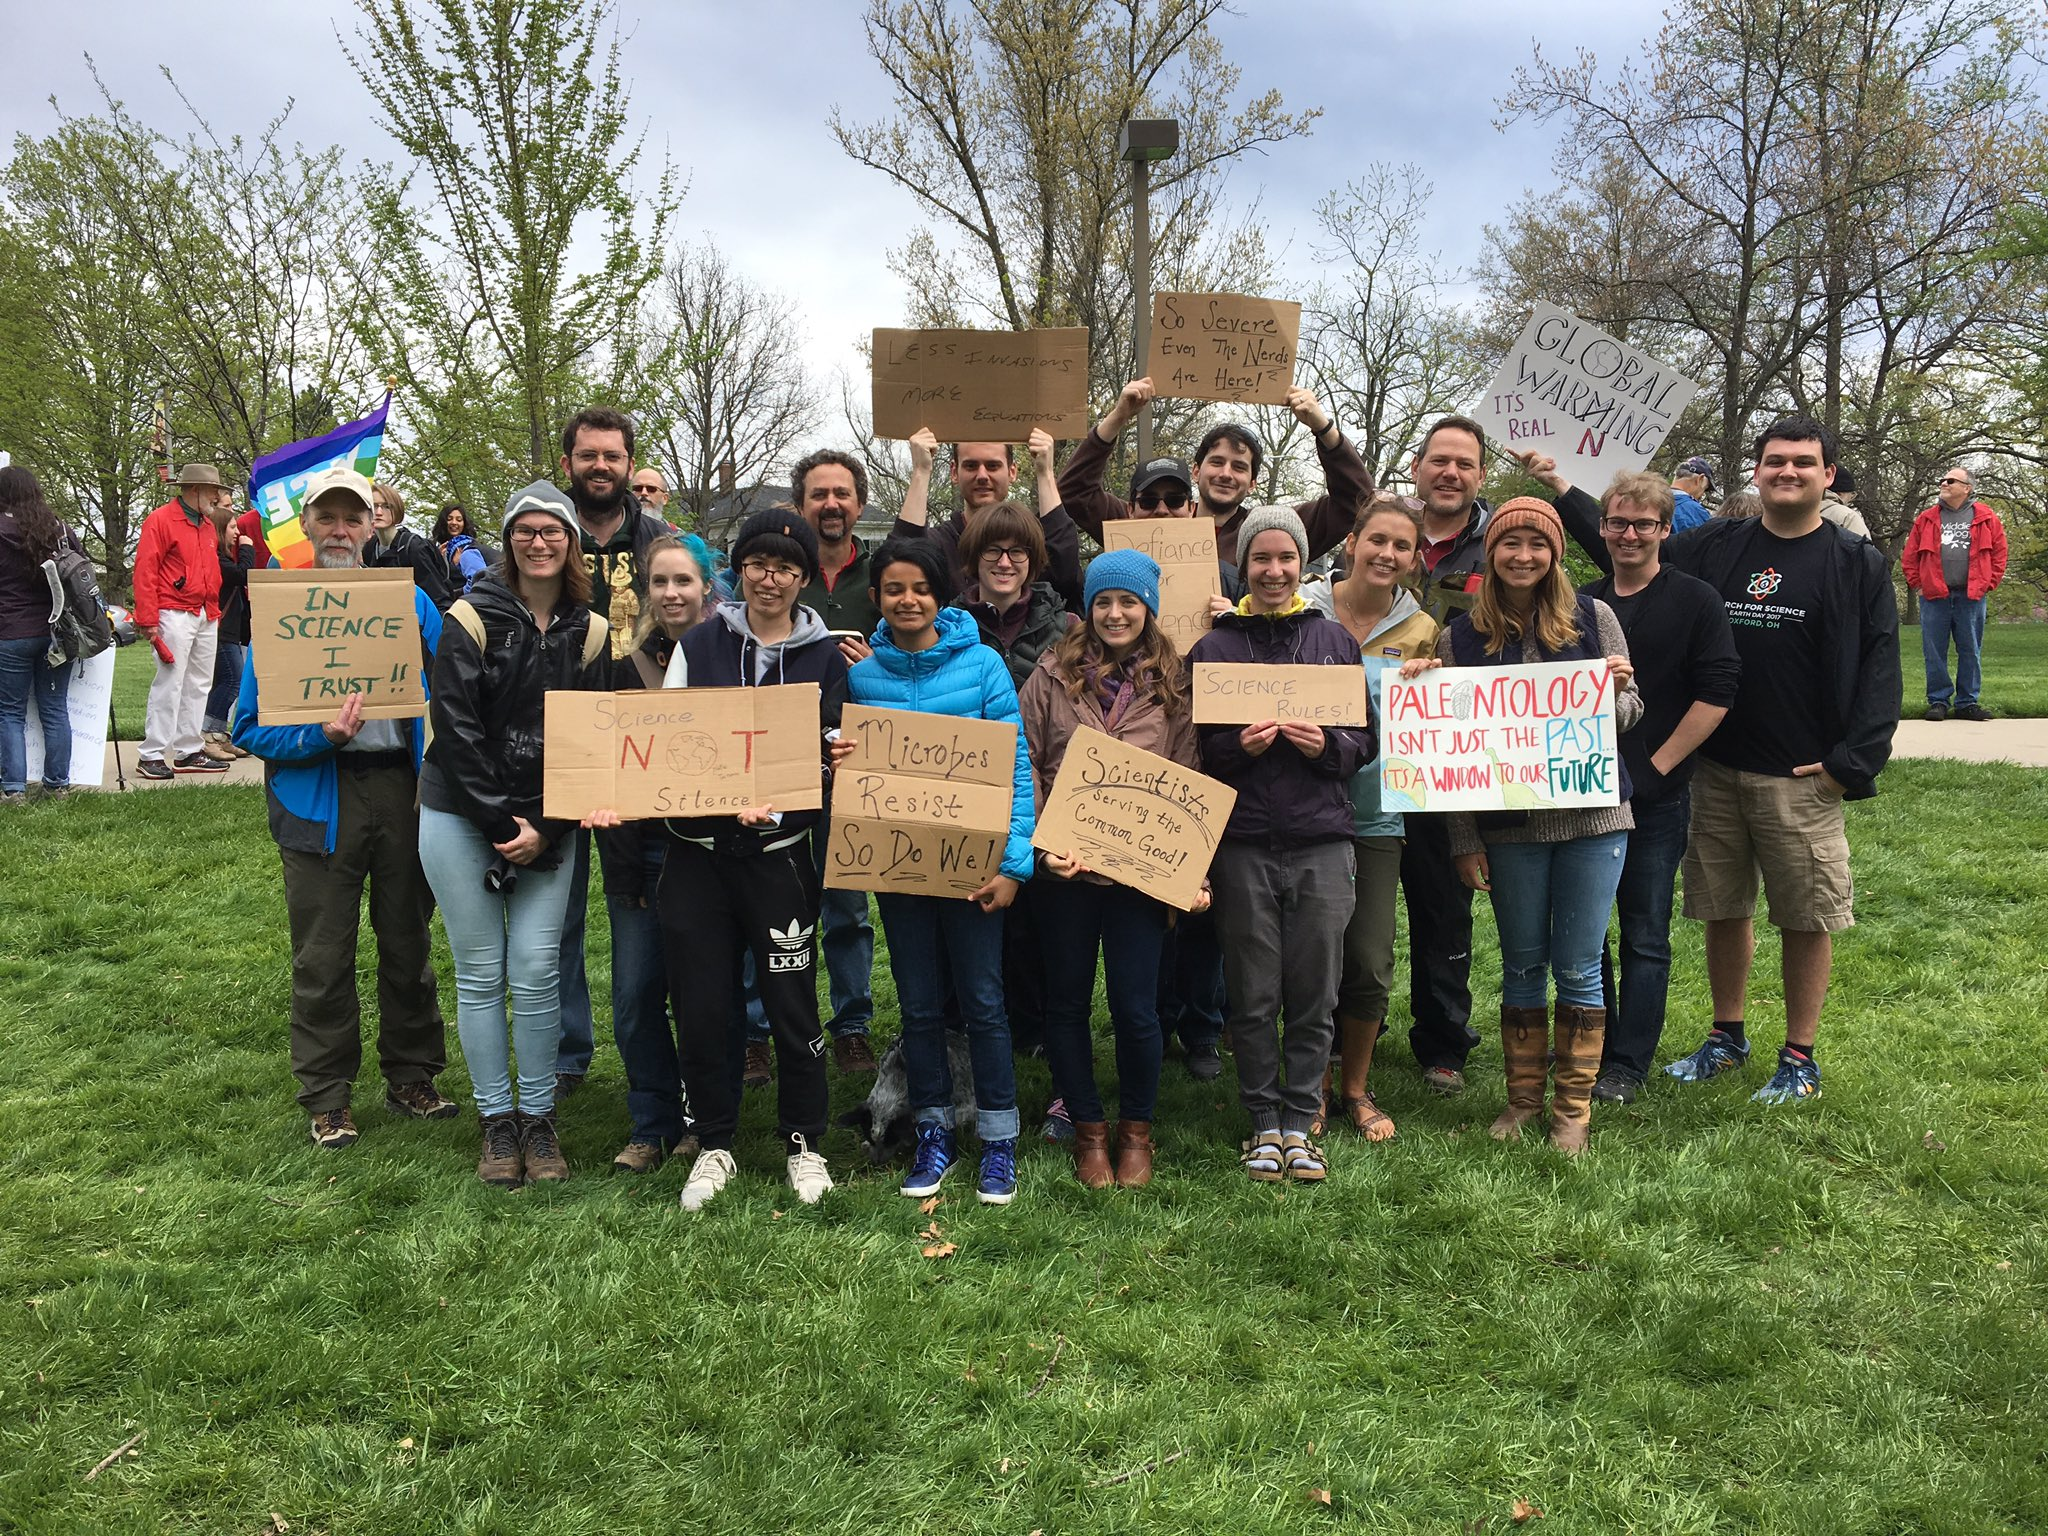 March for Science taking place in Oxford, OH today! #ScienceMarch #science @miamiuniversity @PresGreg @RenateJCrawford join us uptown! https://t.co/R7kHOyGJc1